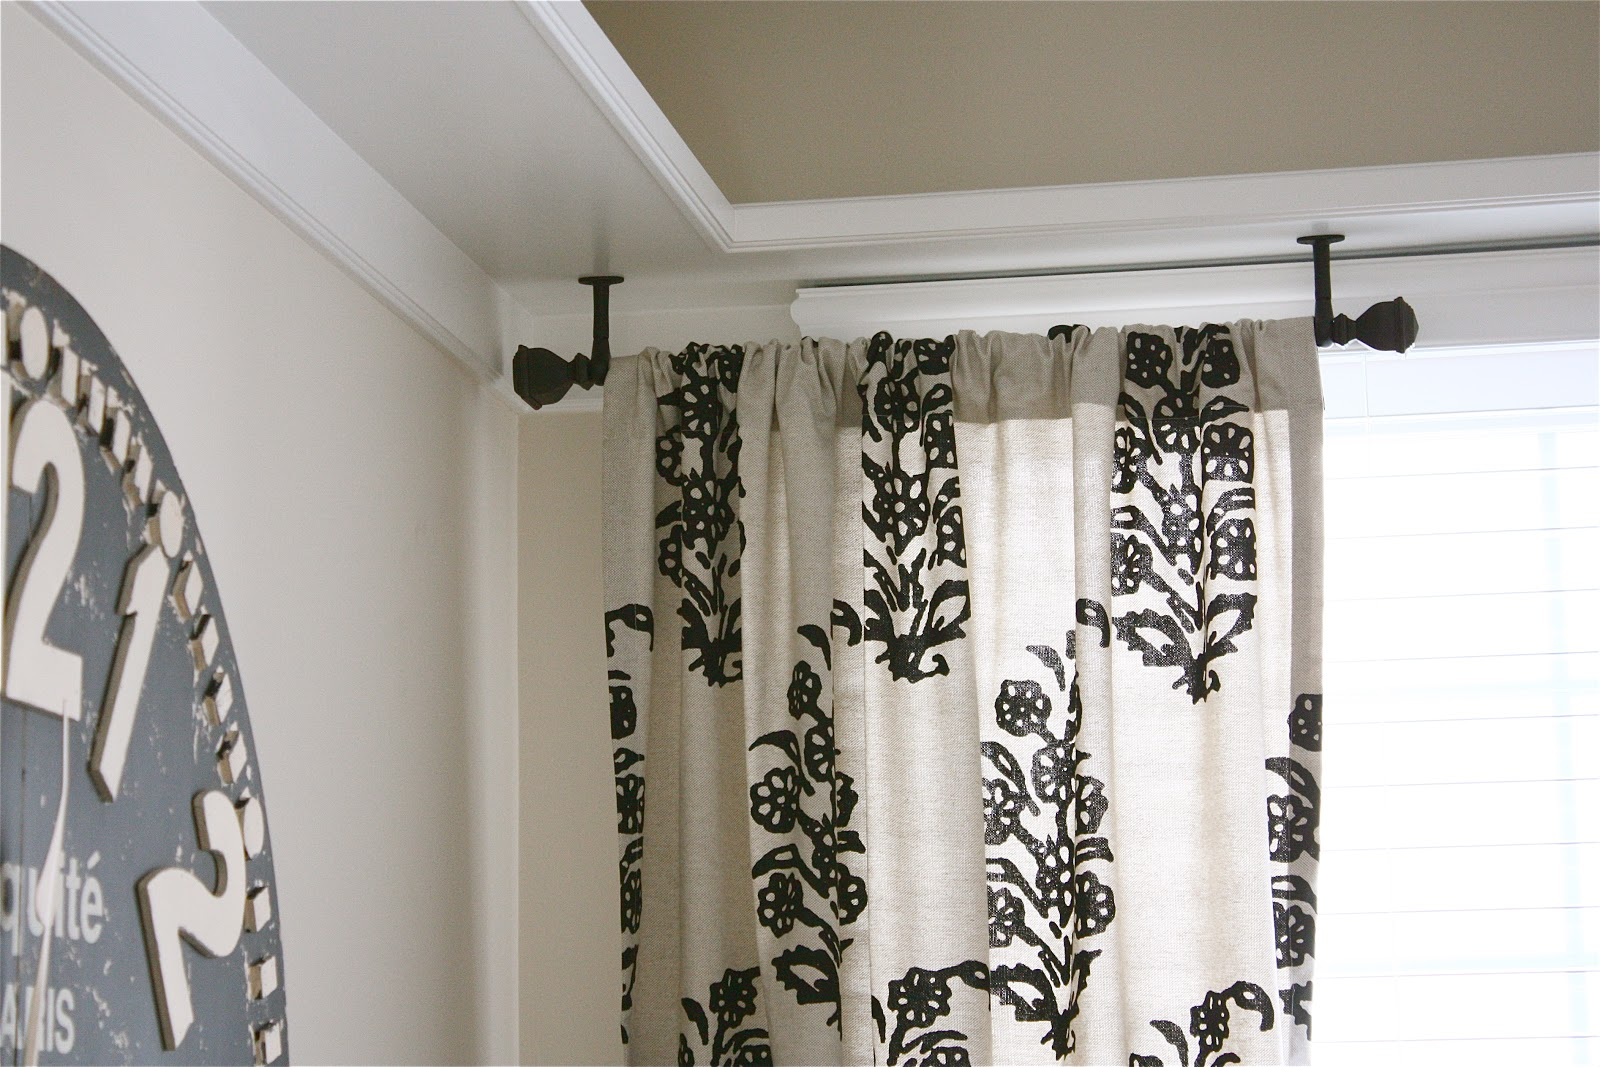 Pictures of Ceiling Mount Drapery Trick custom drapery rods